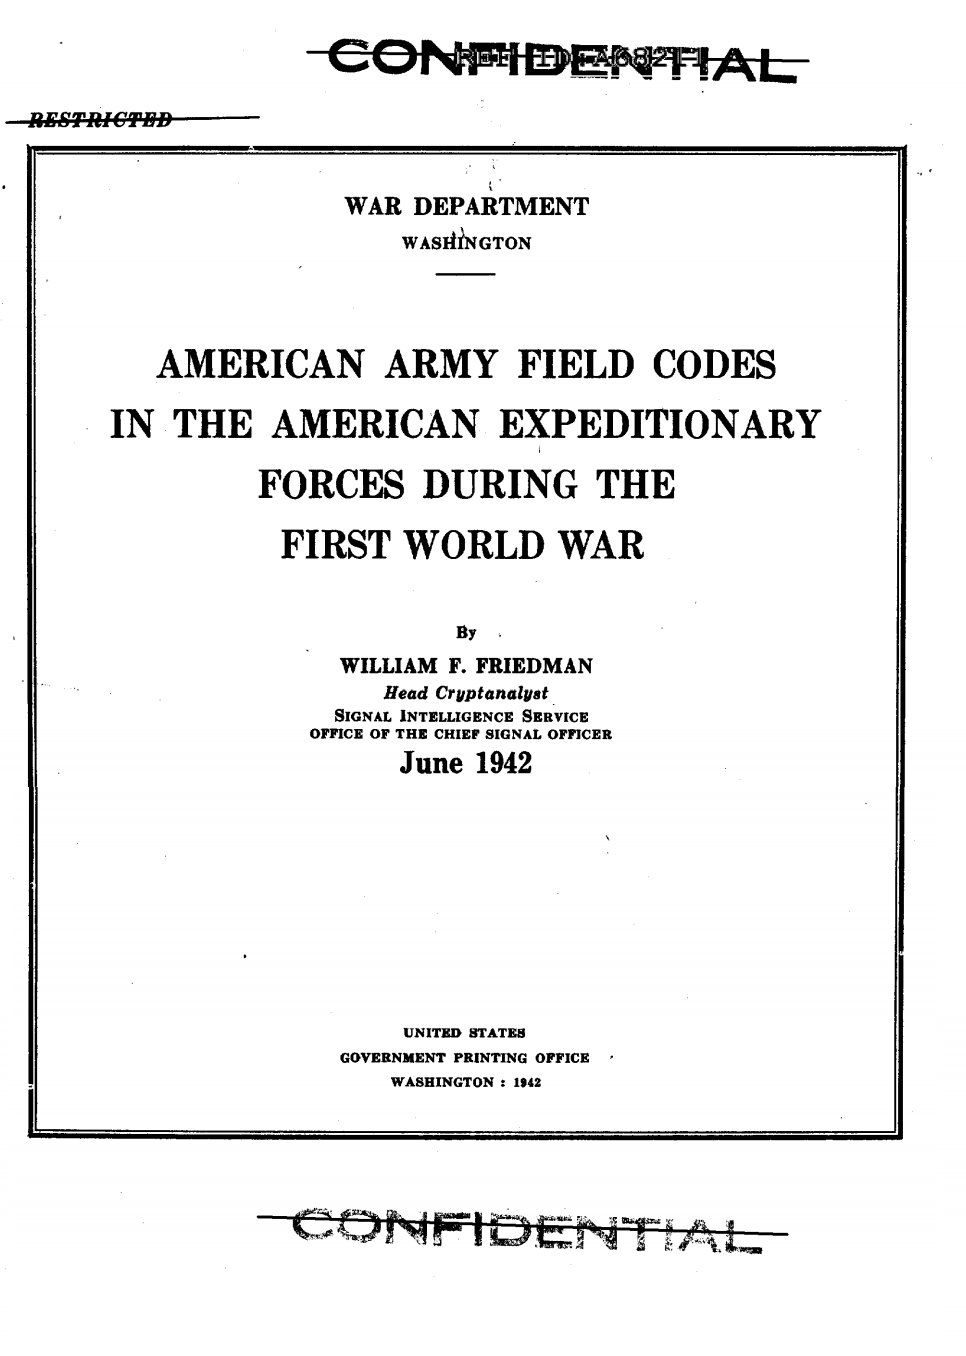 William F. Friedman American Army Field Codes in the AEF during World War One WW1 - page 4